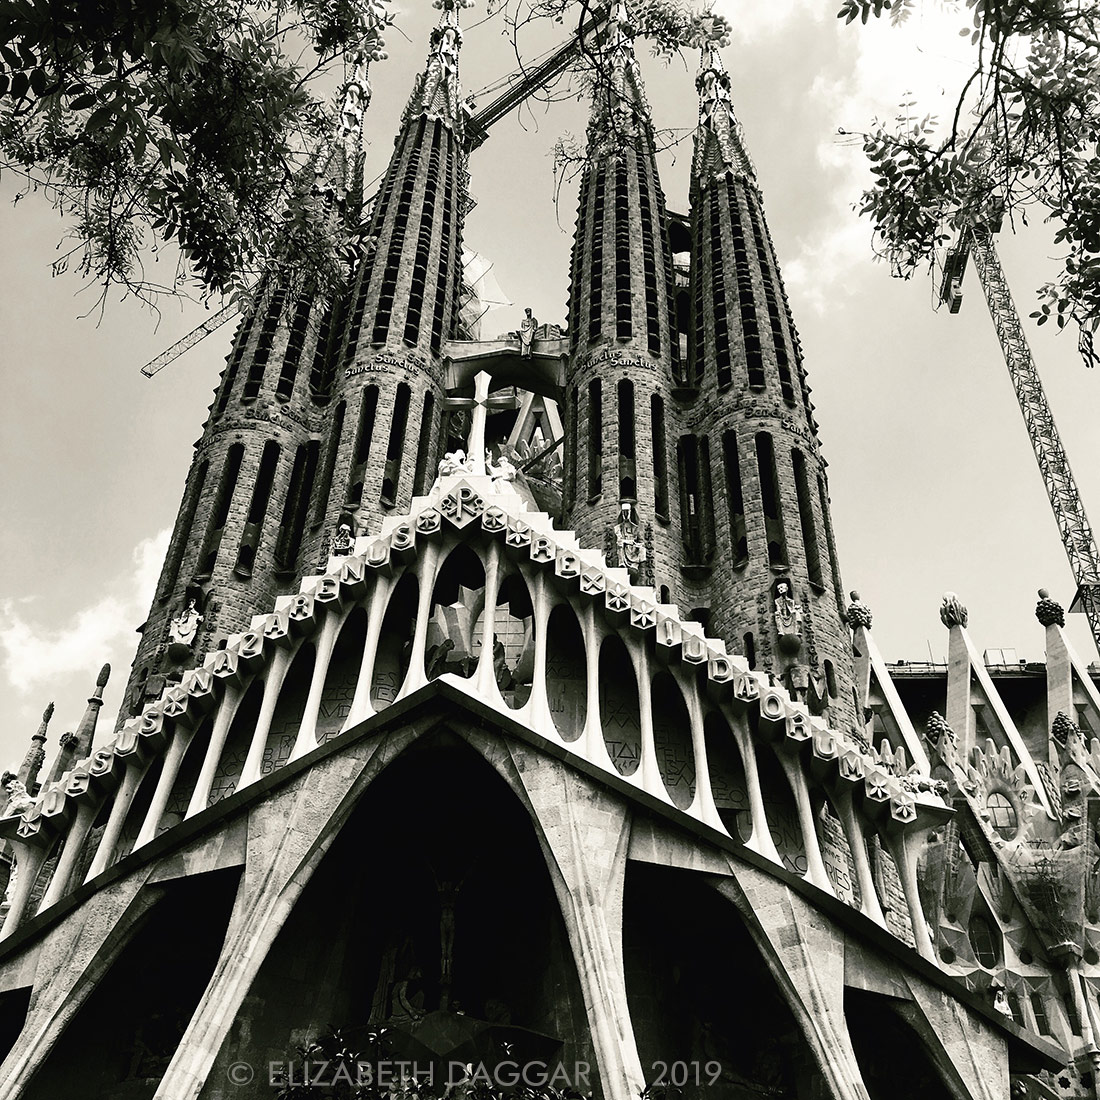 Gaudi's La Sagrada Familia façade in black and white